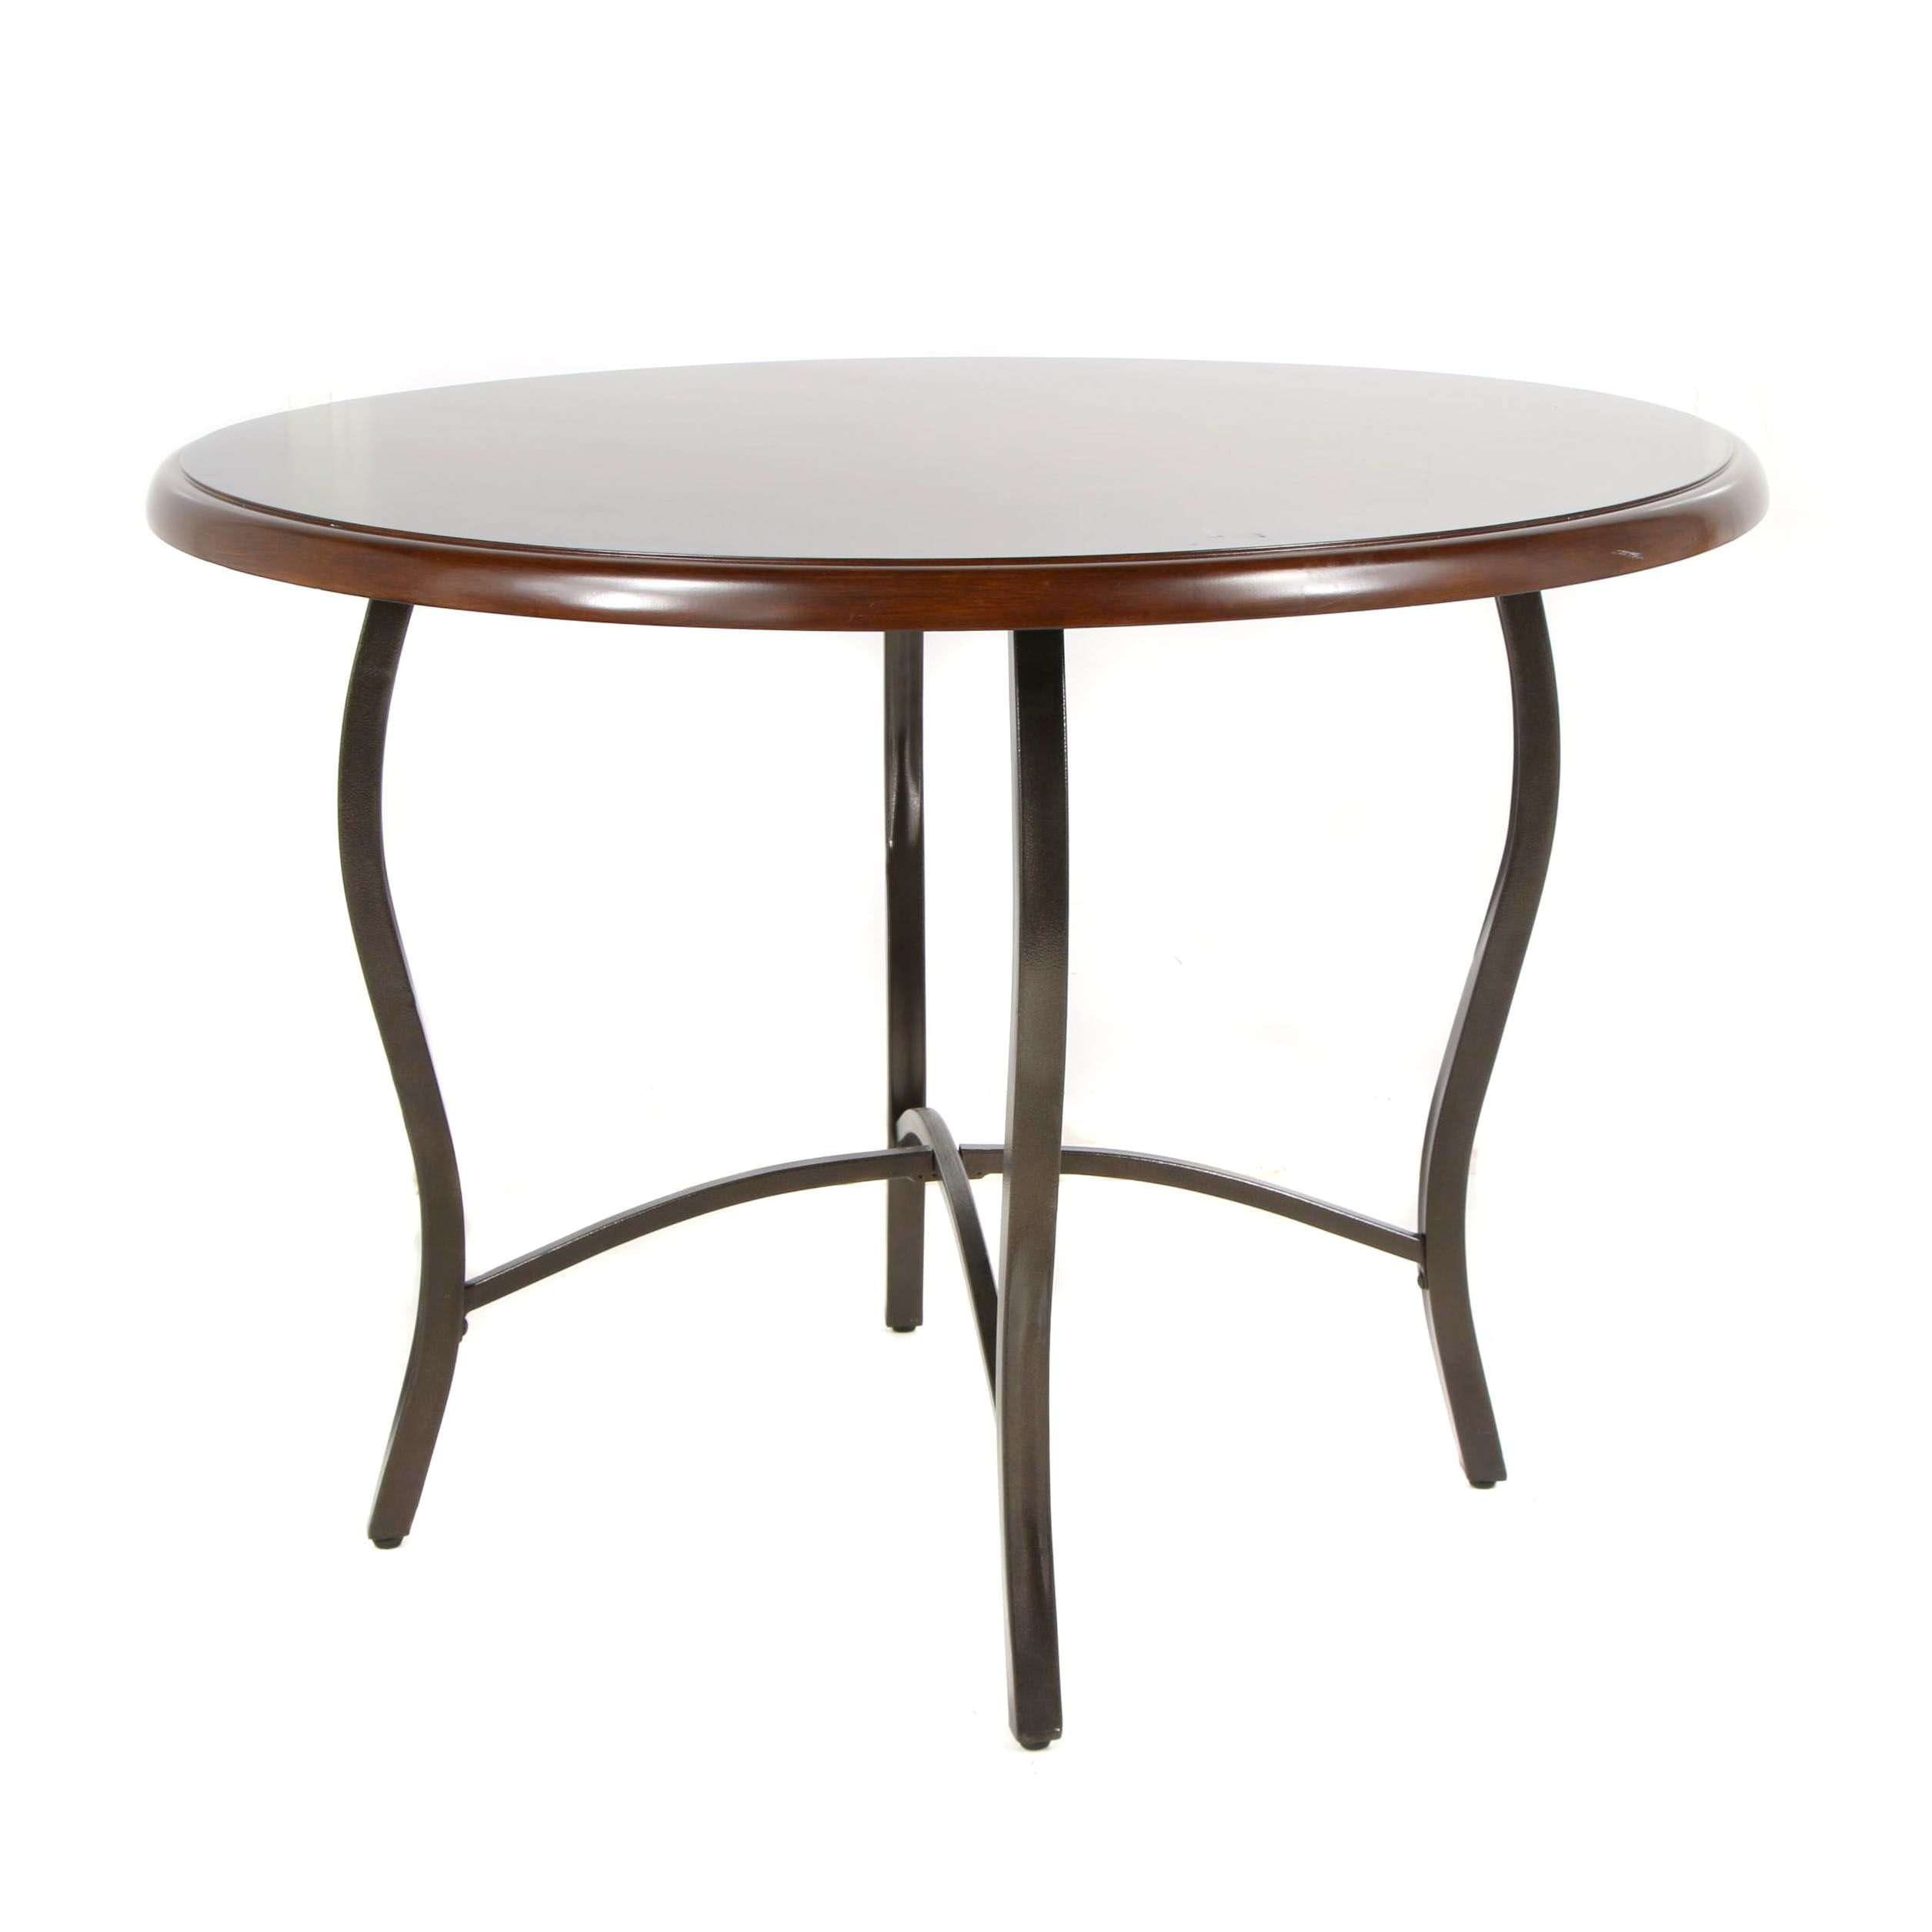 Round Wooden Table with Metal Legs